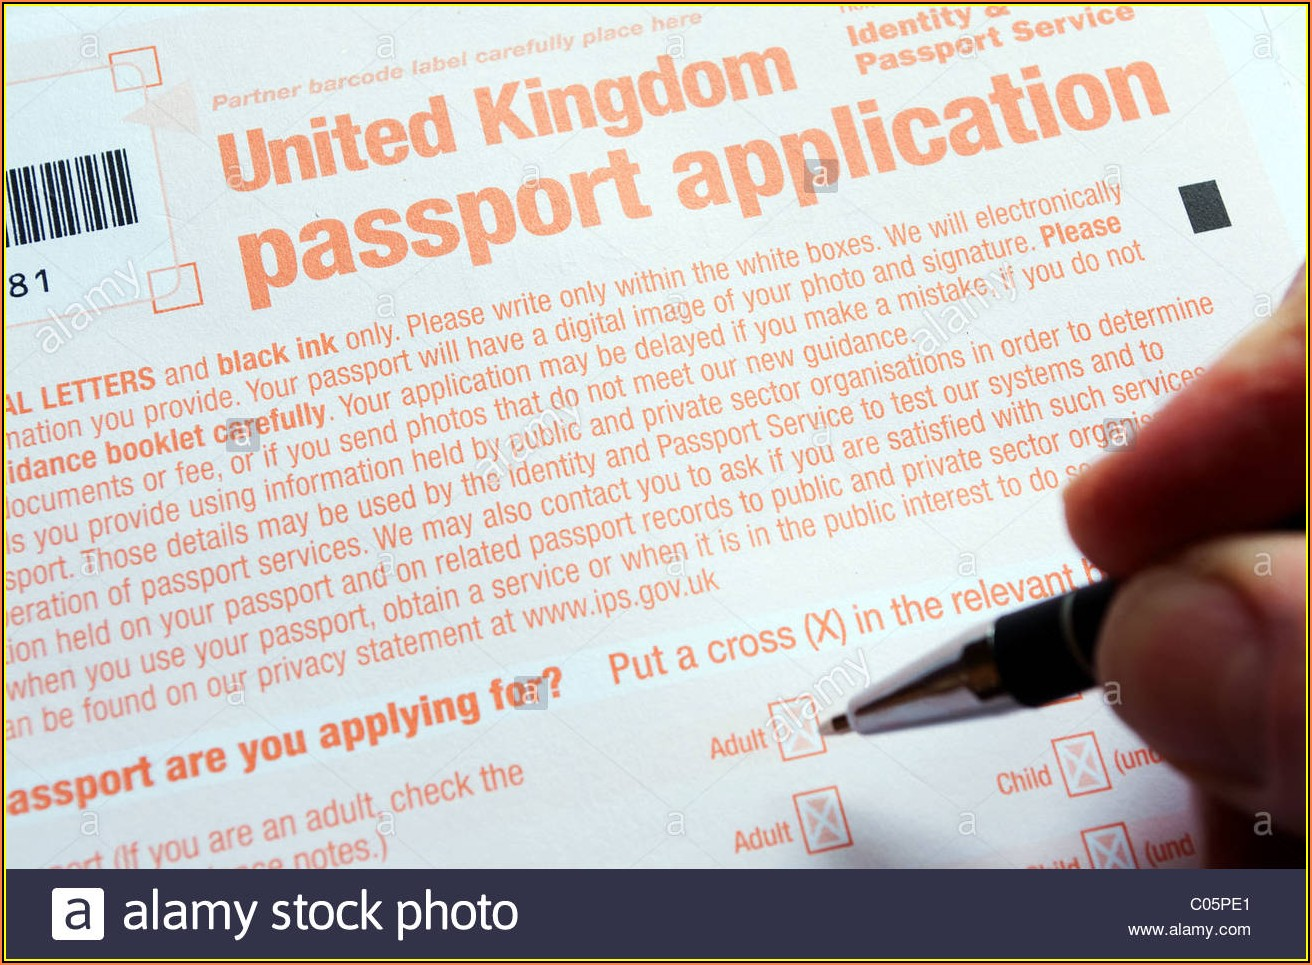 Uk Passport Renewal Application Form Download Pdf